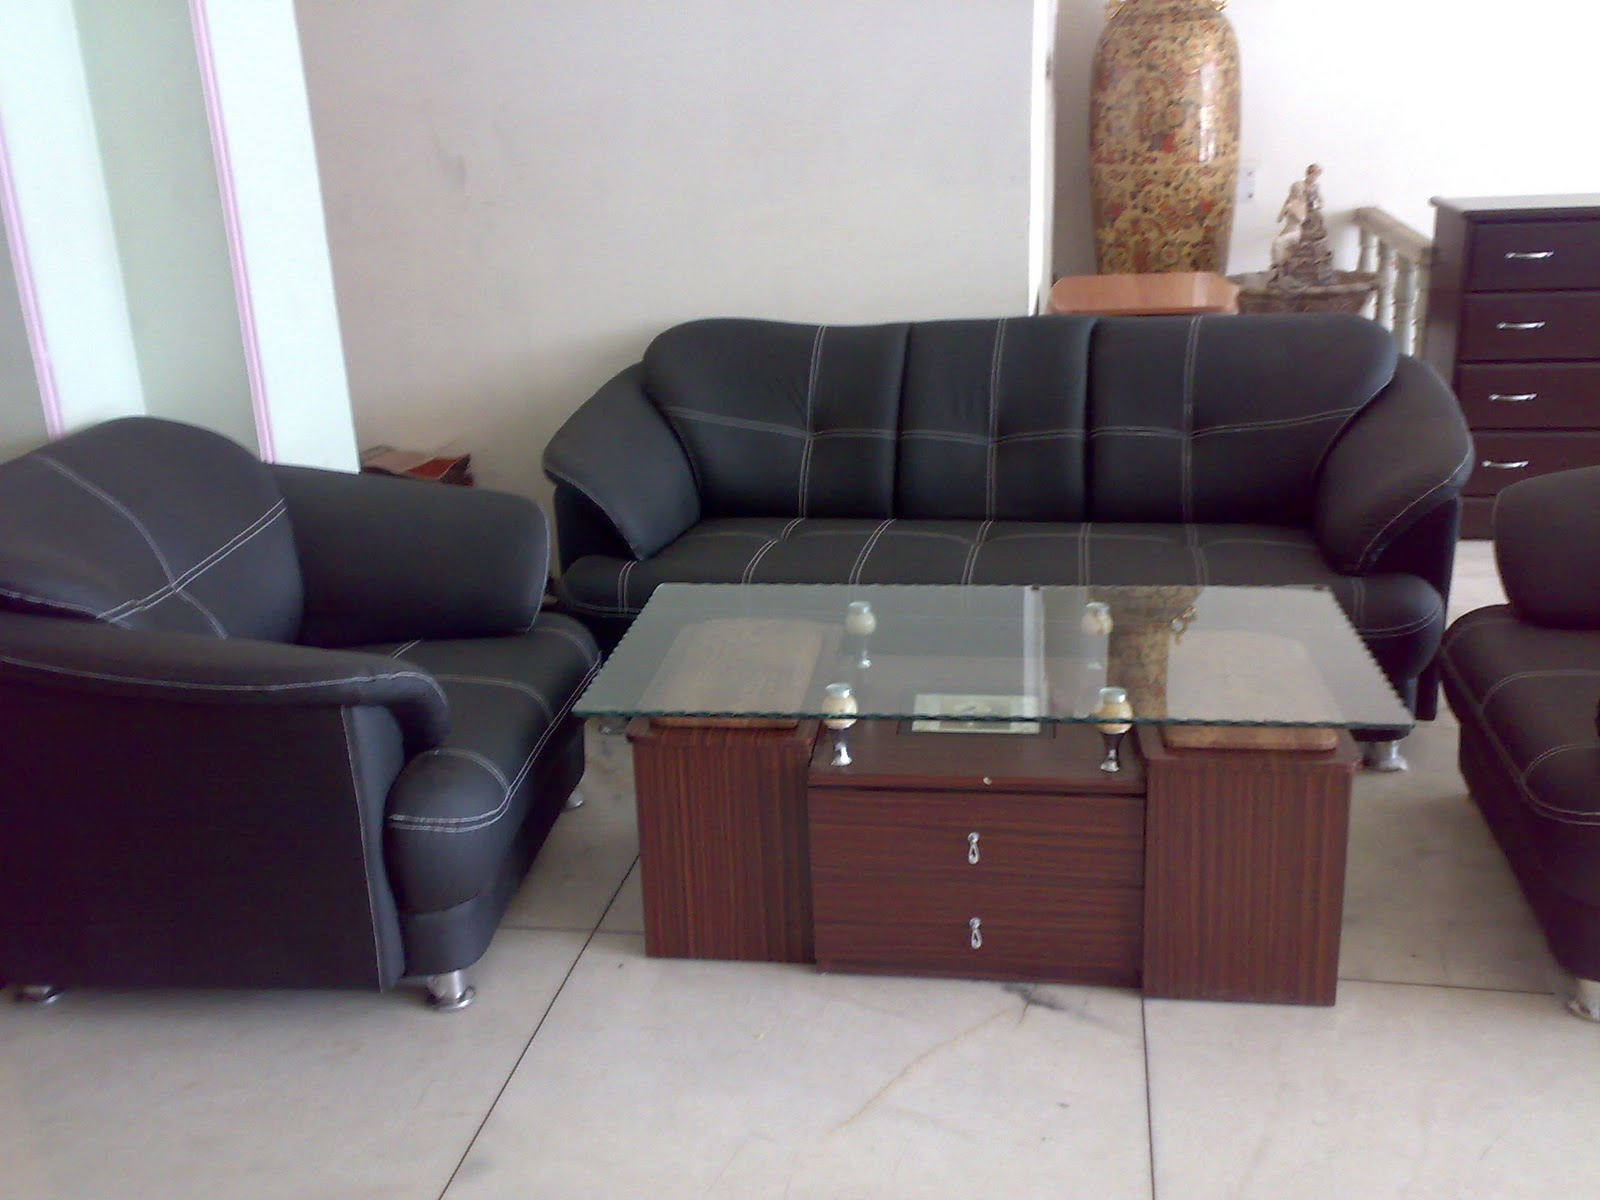 9 Seater Sofa Set Designs With Price Sofa Designs Kitchen Designs